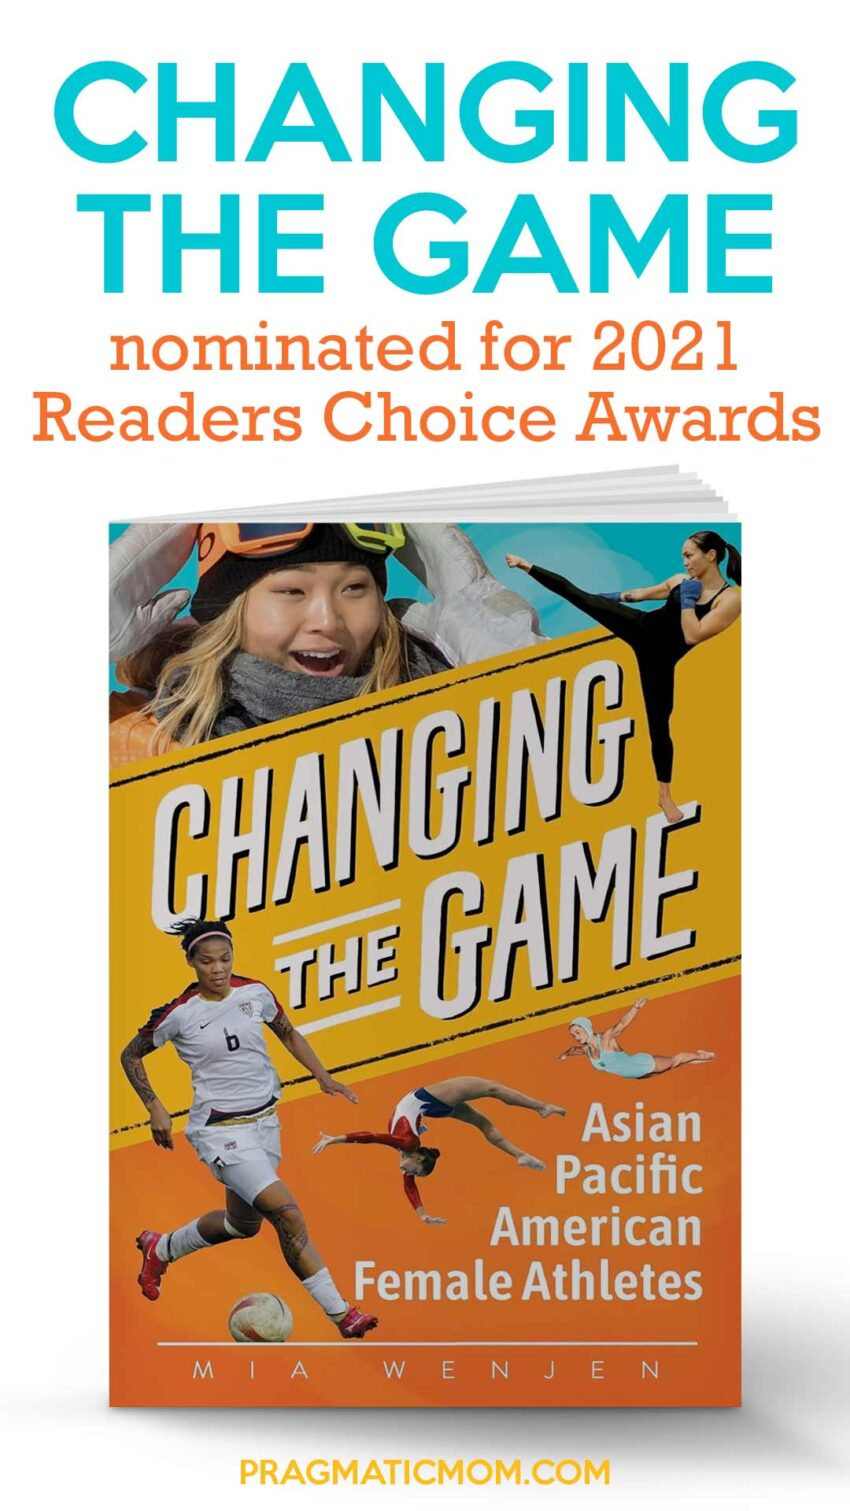 Changing the Game nominated for 2021 Readers Choice Awards